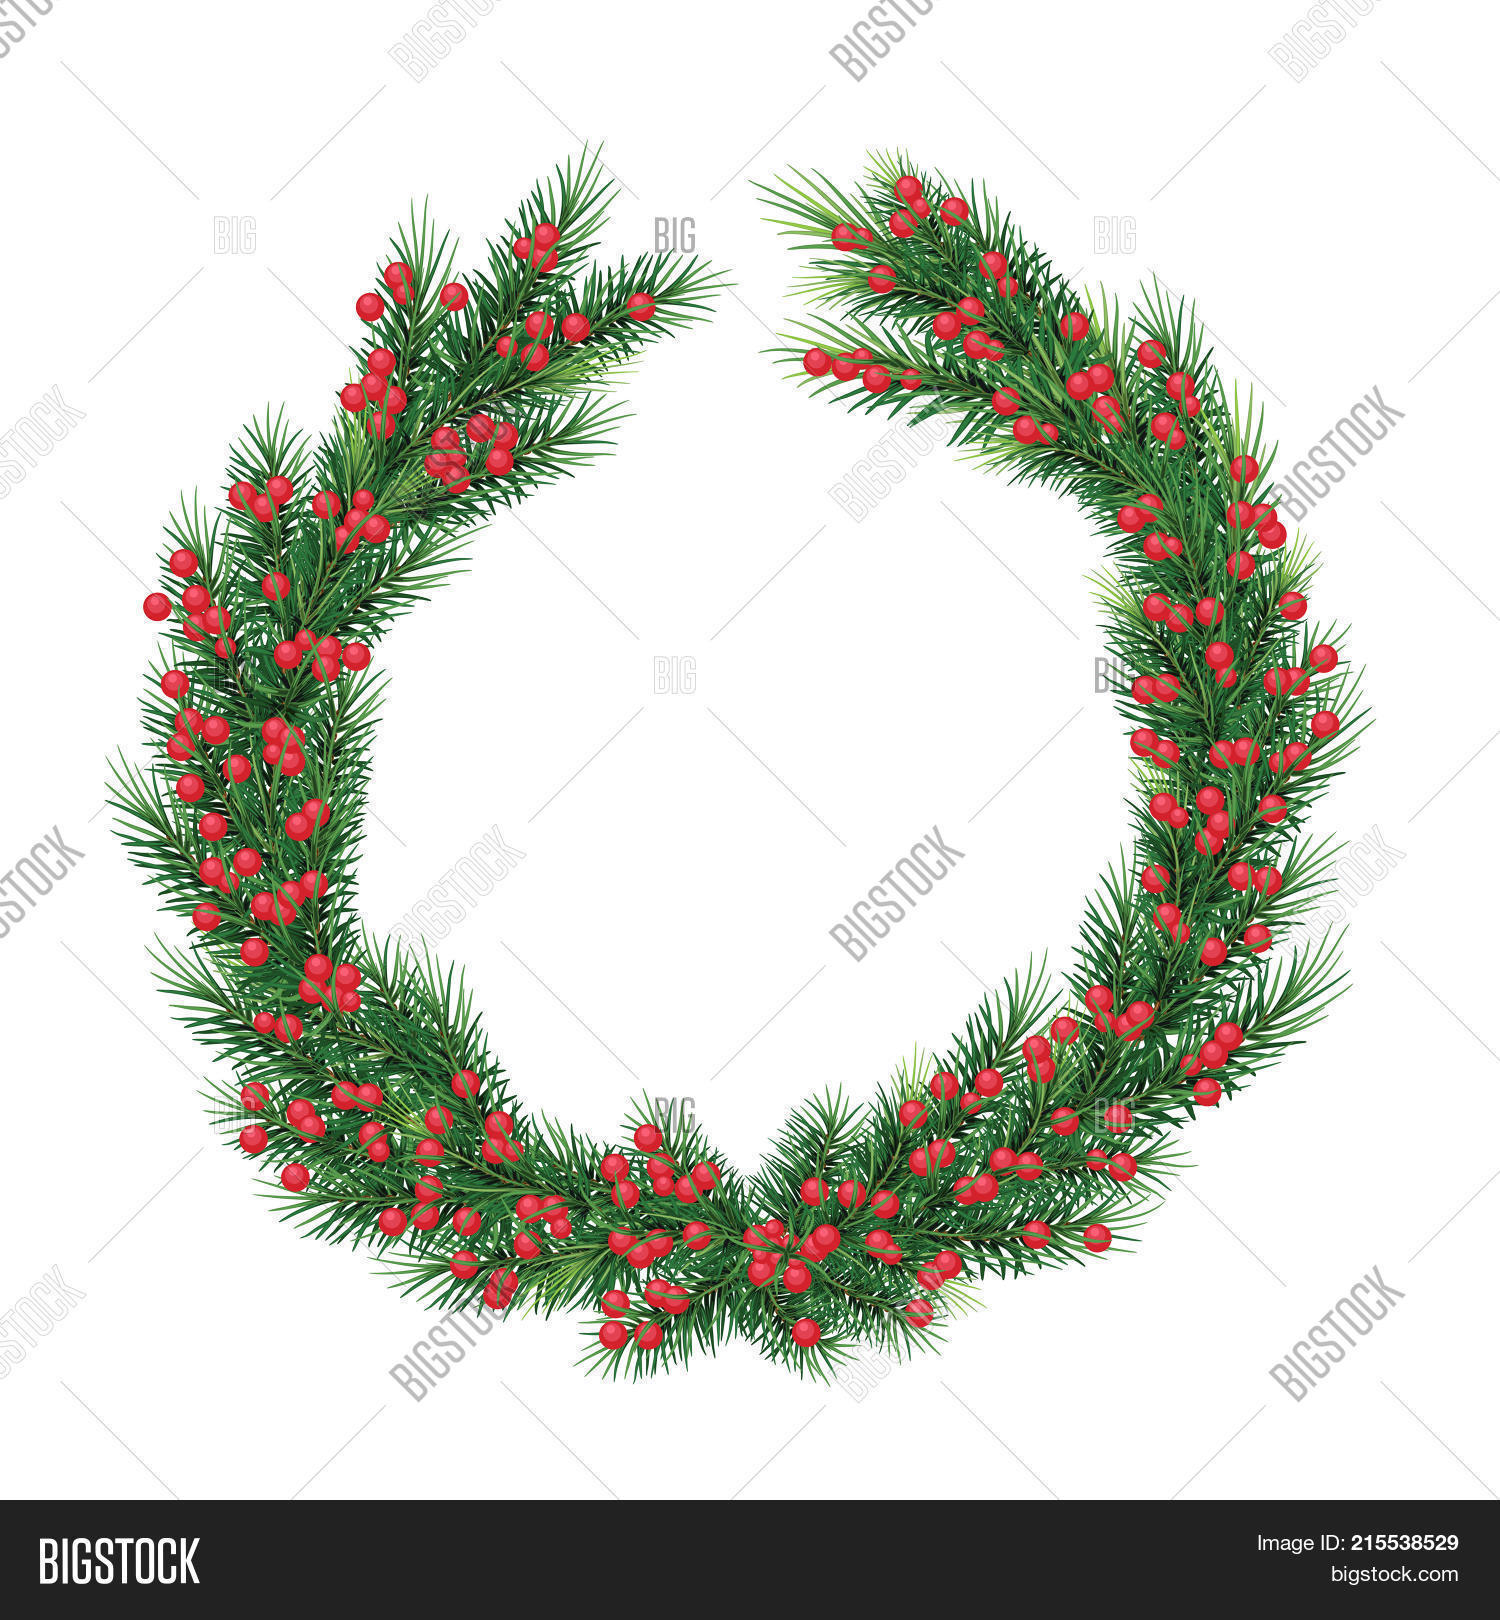 Christmas Wreath Xmas Image & Photo (Free Trial) | Bigstock